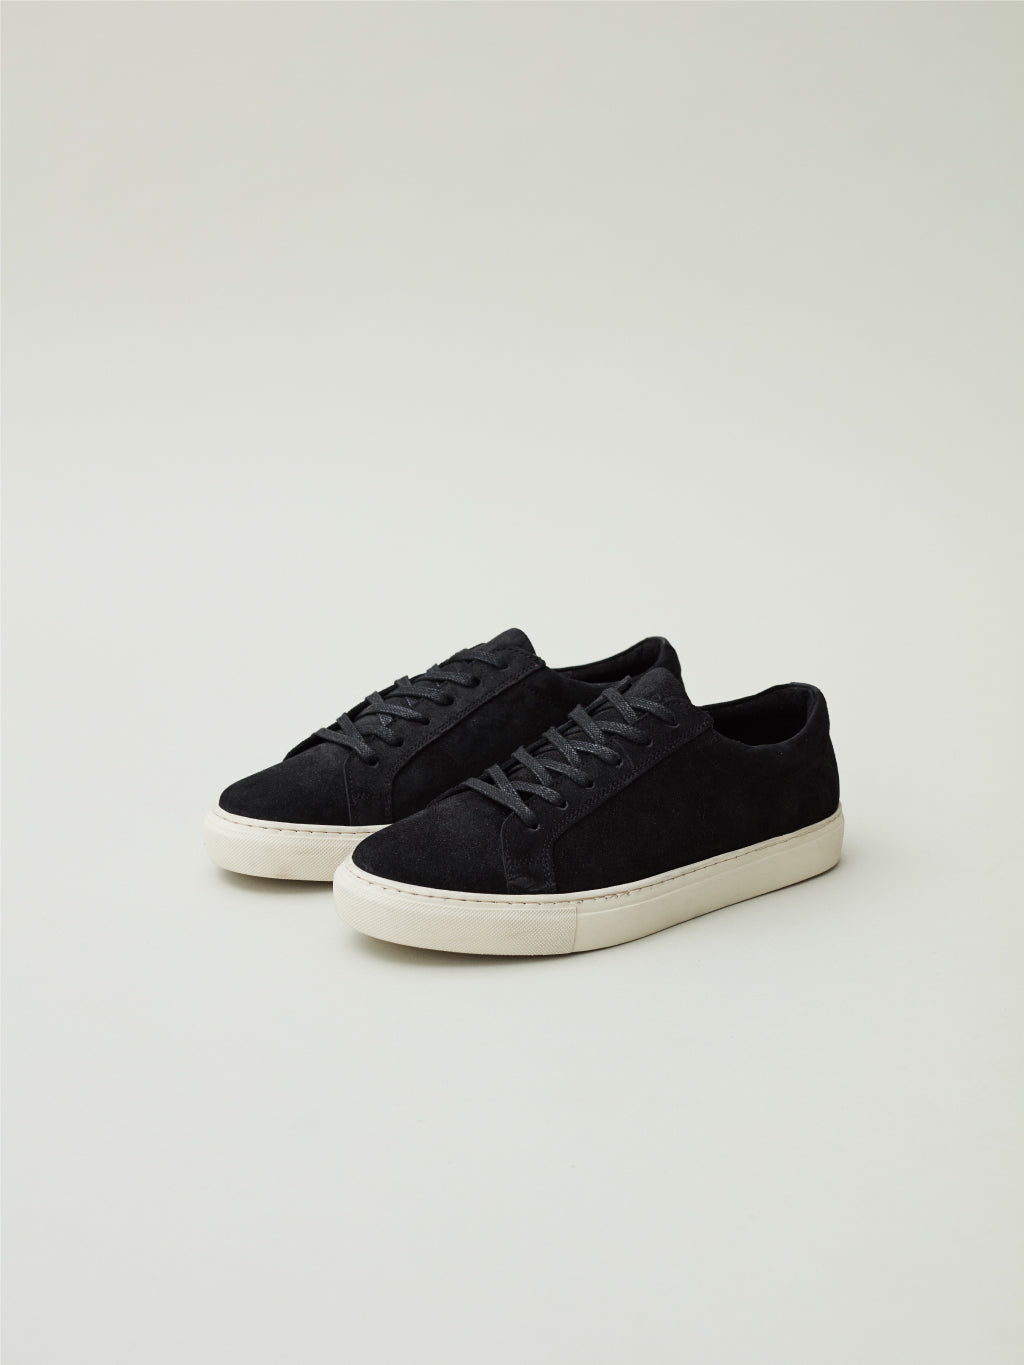 Resort Classic Sneakers | Black